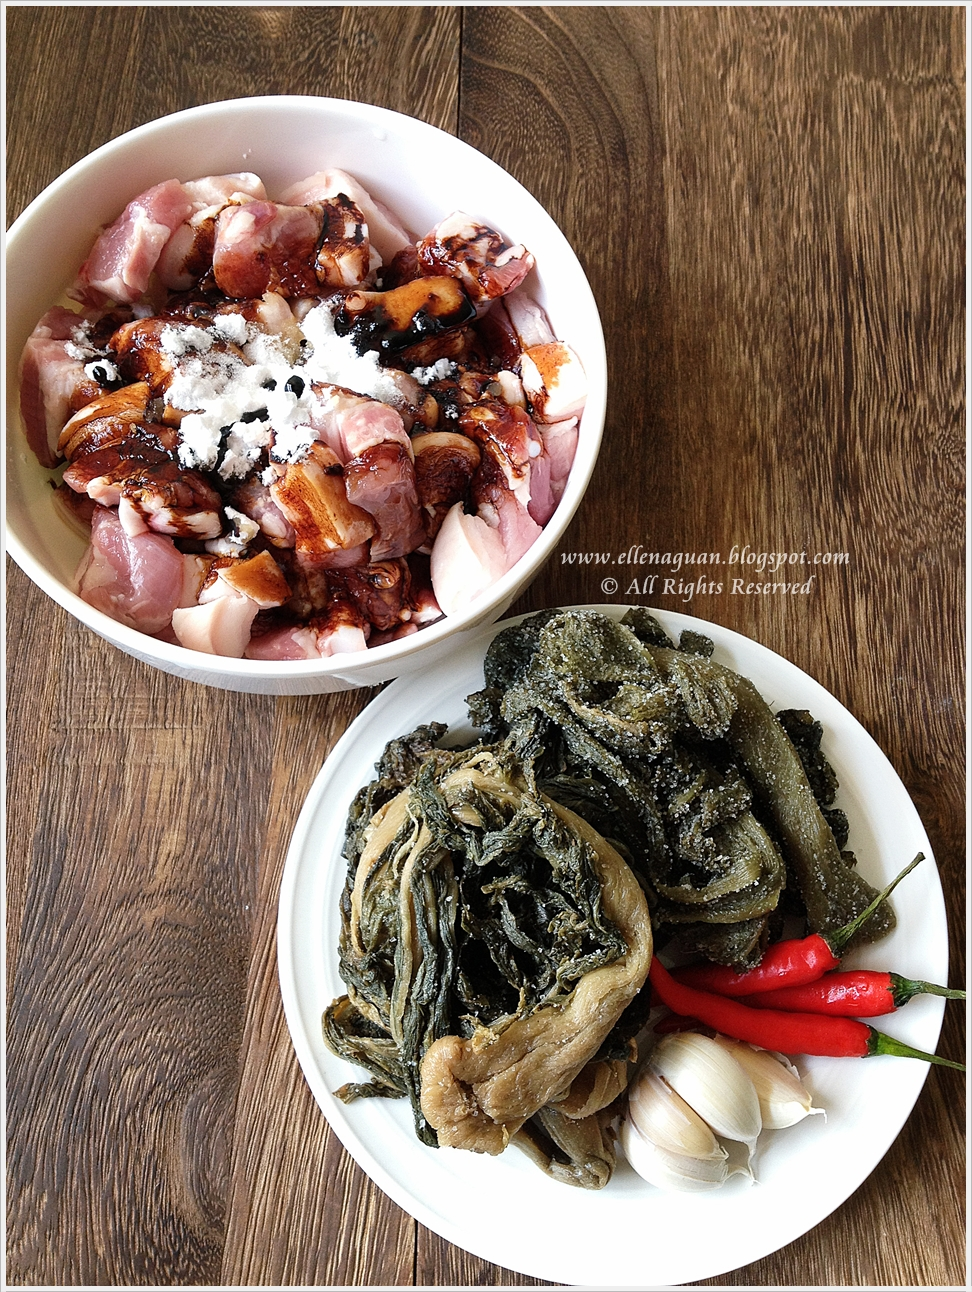 Cuisine paradise singapore food blog recipes reviews and travel cuisine paradise singapore food blog recipes reviews and travel 4 quick recipes on soup and dishes forumfinder Images